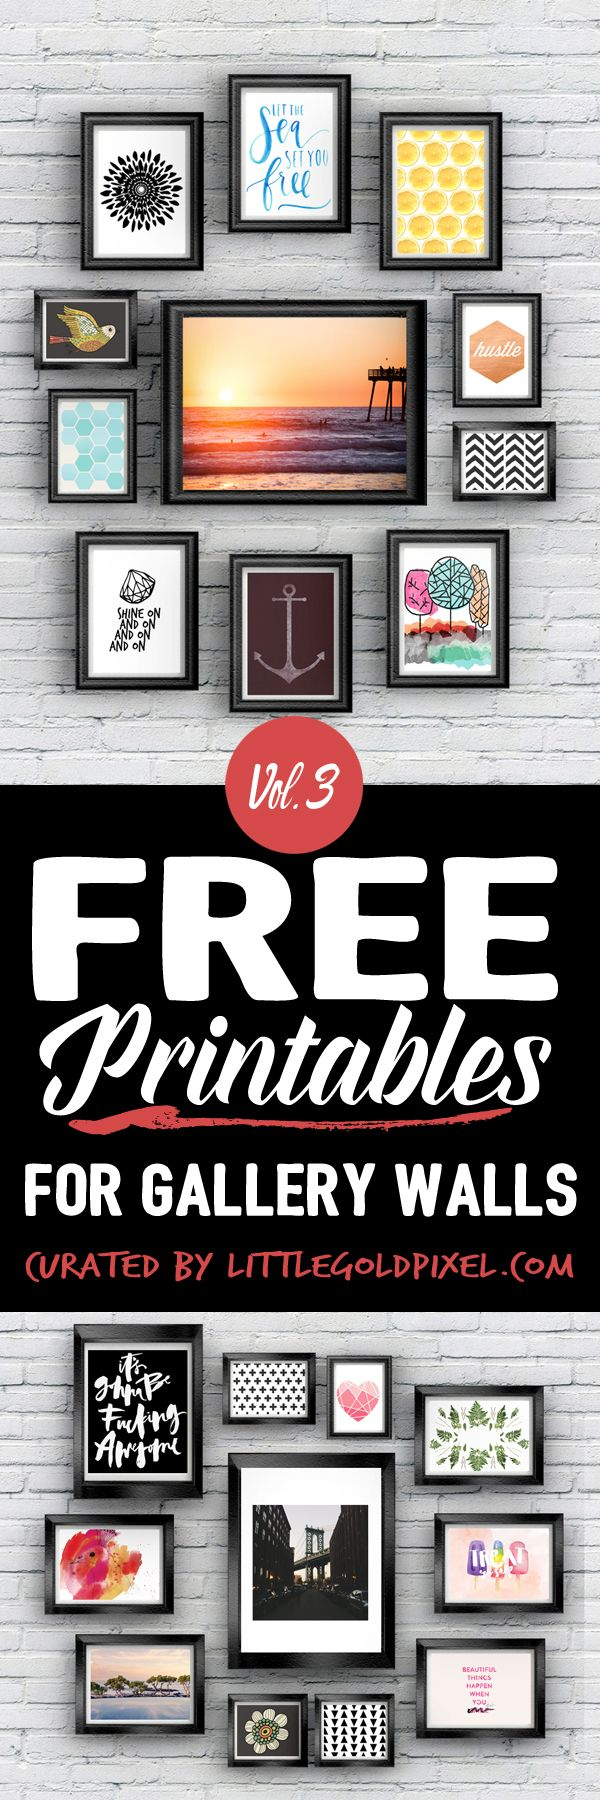 A roundup of fun, trendy and beautiful free printables for gallery walls. From patterns to calligraphy to modern stock pics, we've got your hip prints here.